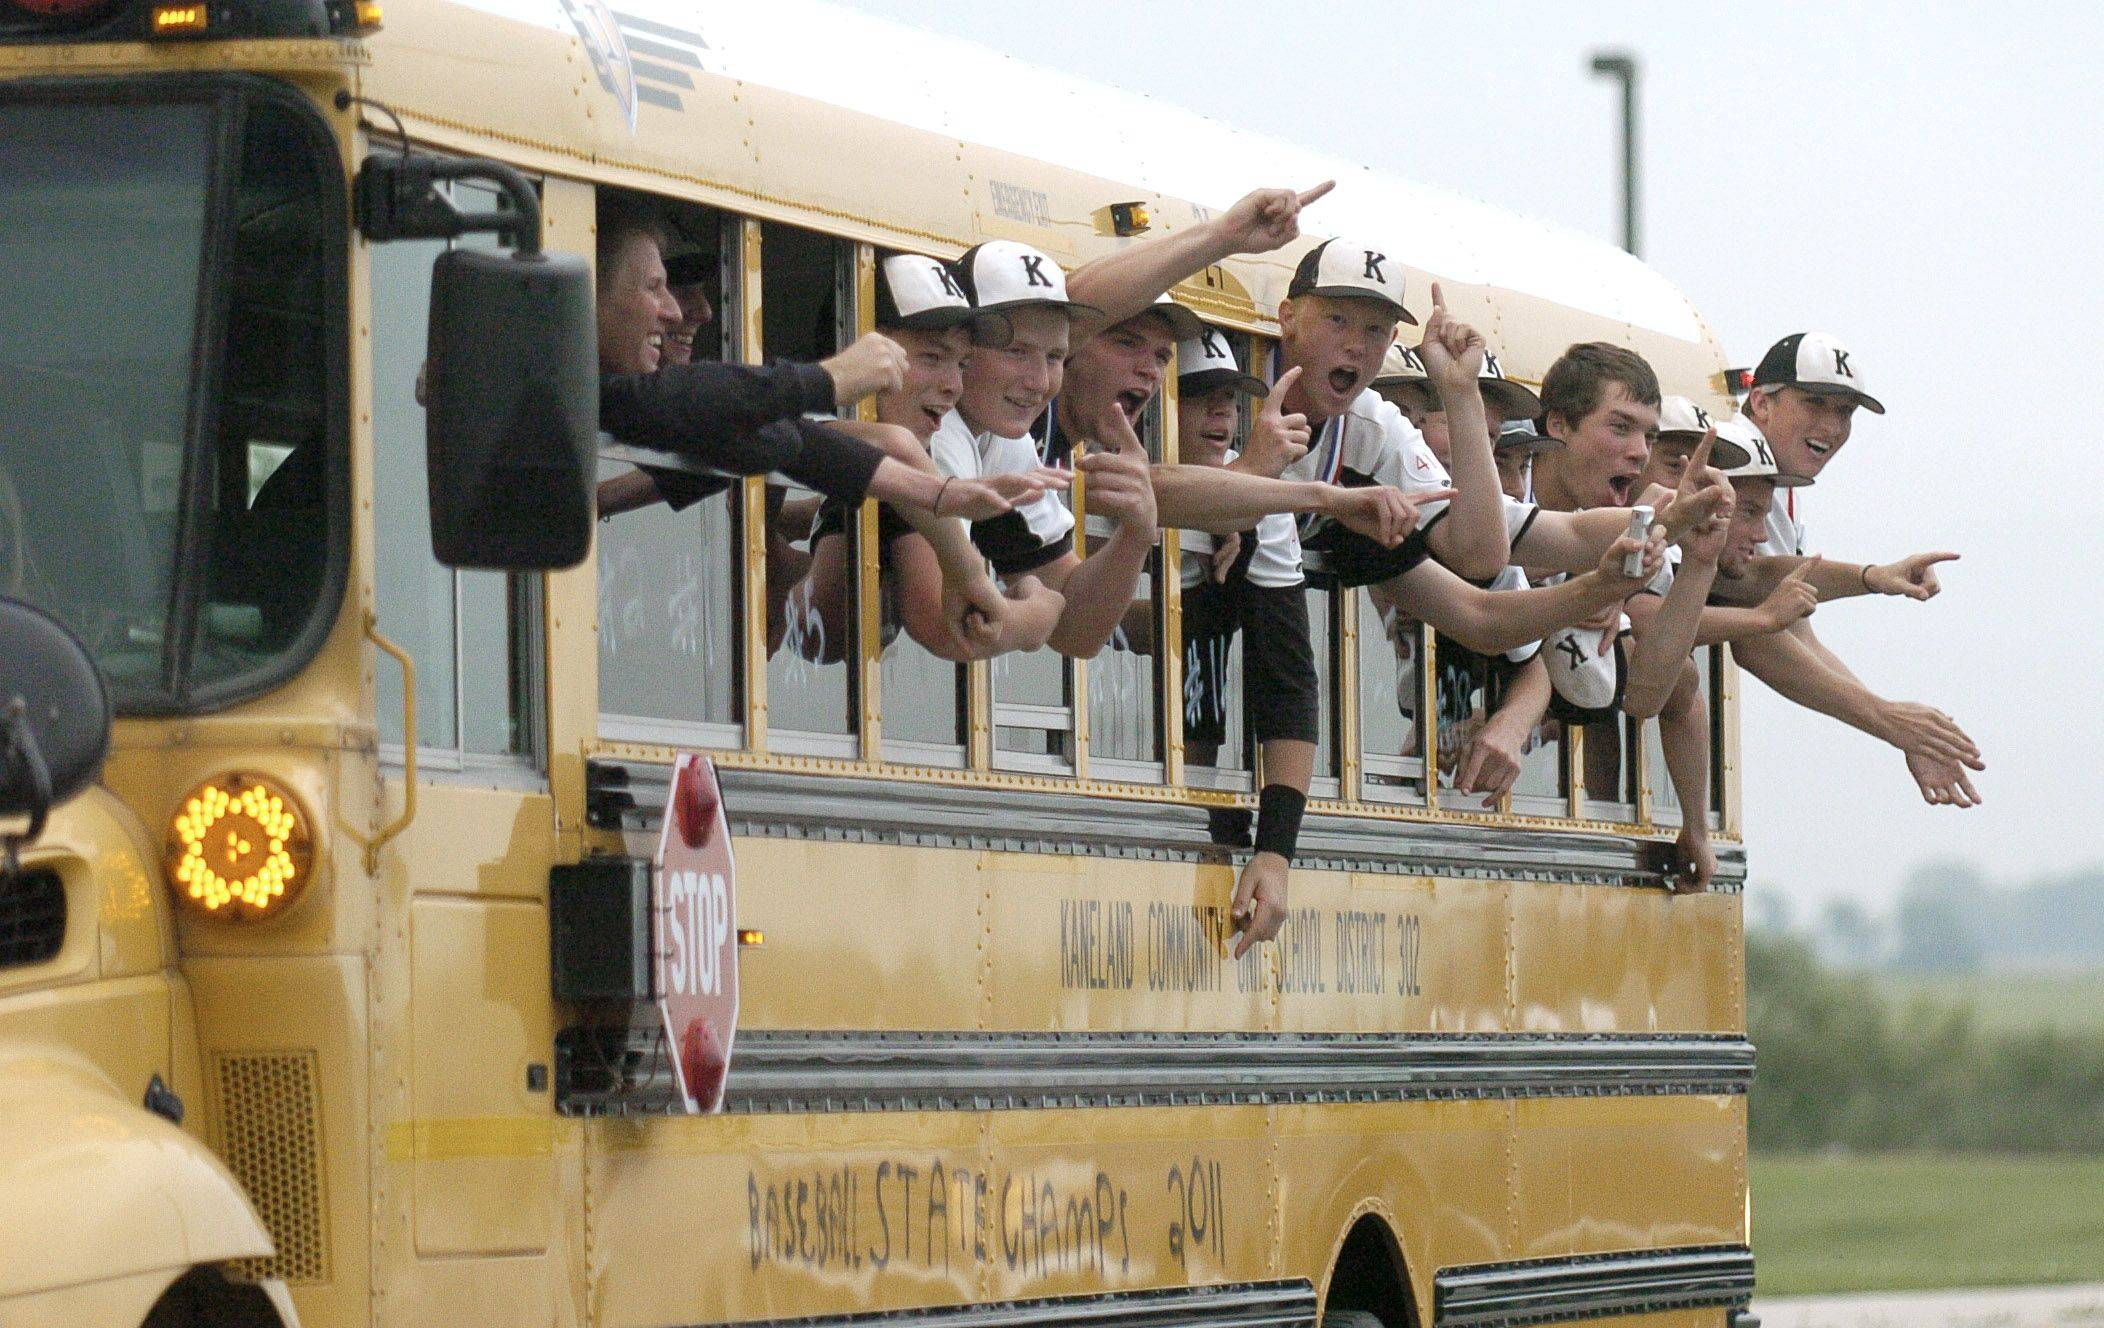 The Kaneland High School 3A state champs varsity baseball team cheers as they hang out the bus window on their return to school during a homecoming parade on Saturday, June 11.